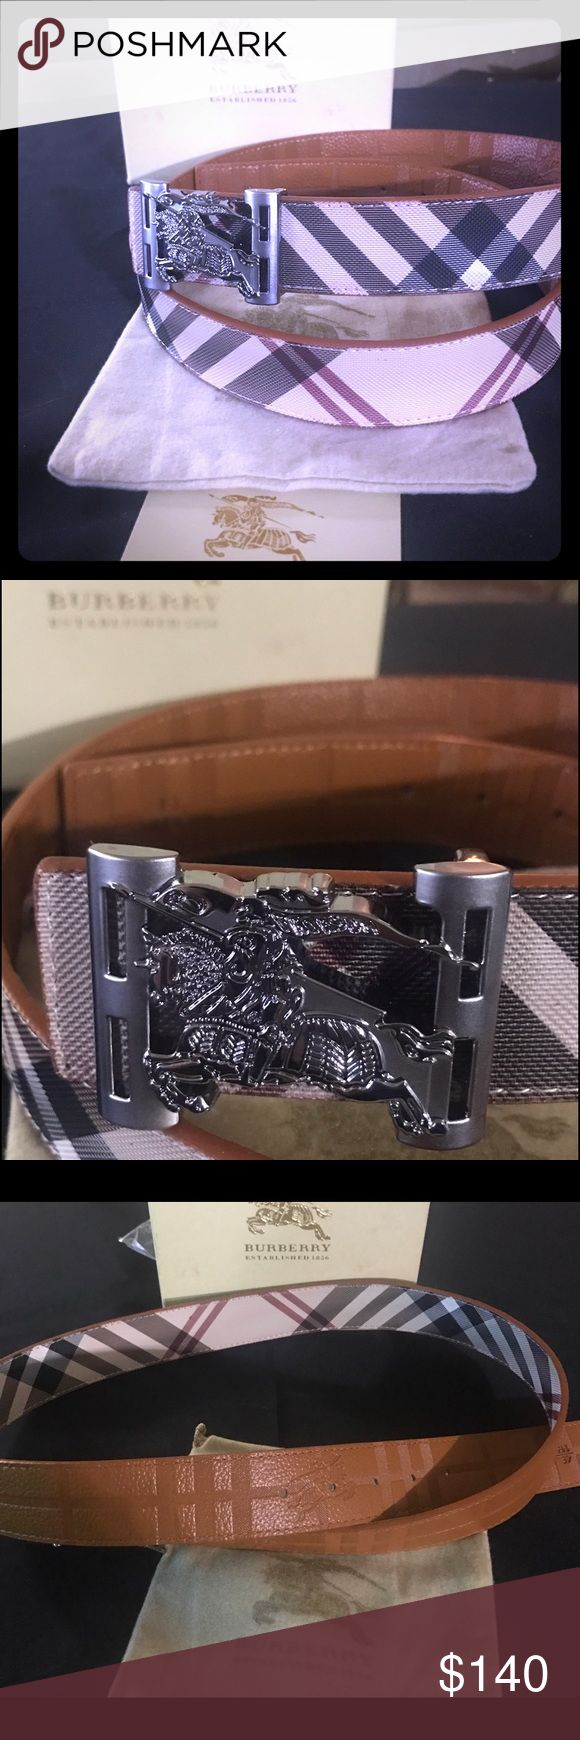 Burberry belt New Burberry reversible belt comes with box and dust bag. Burberry Signature Check and cognac color inside. Burberry Accessories Belts